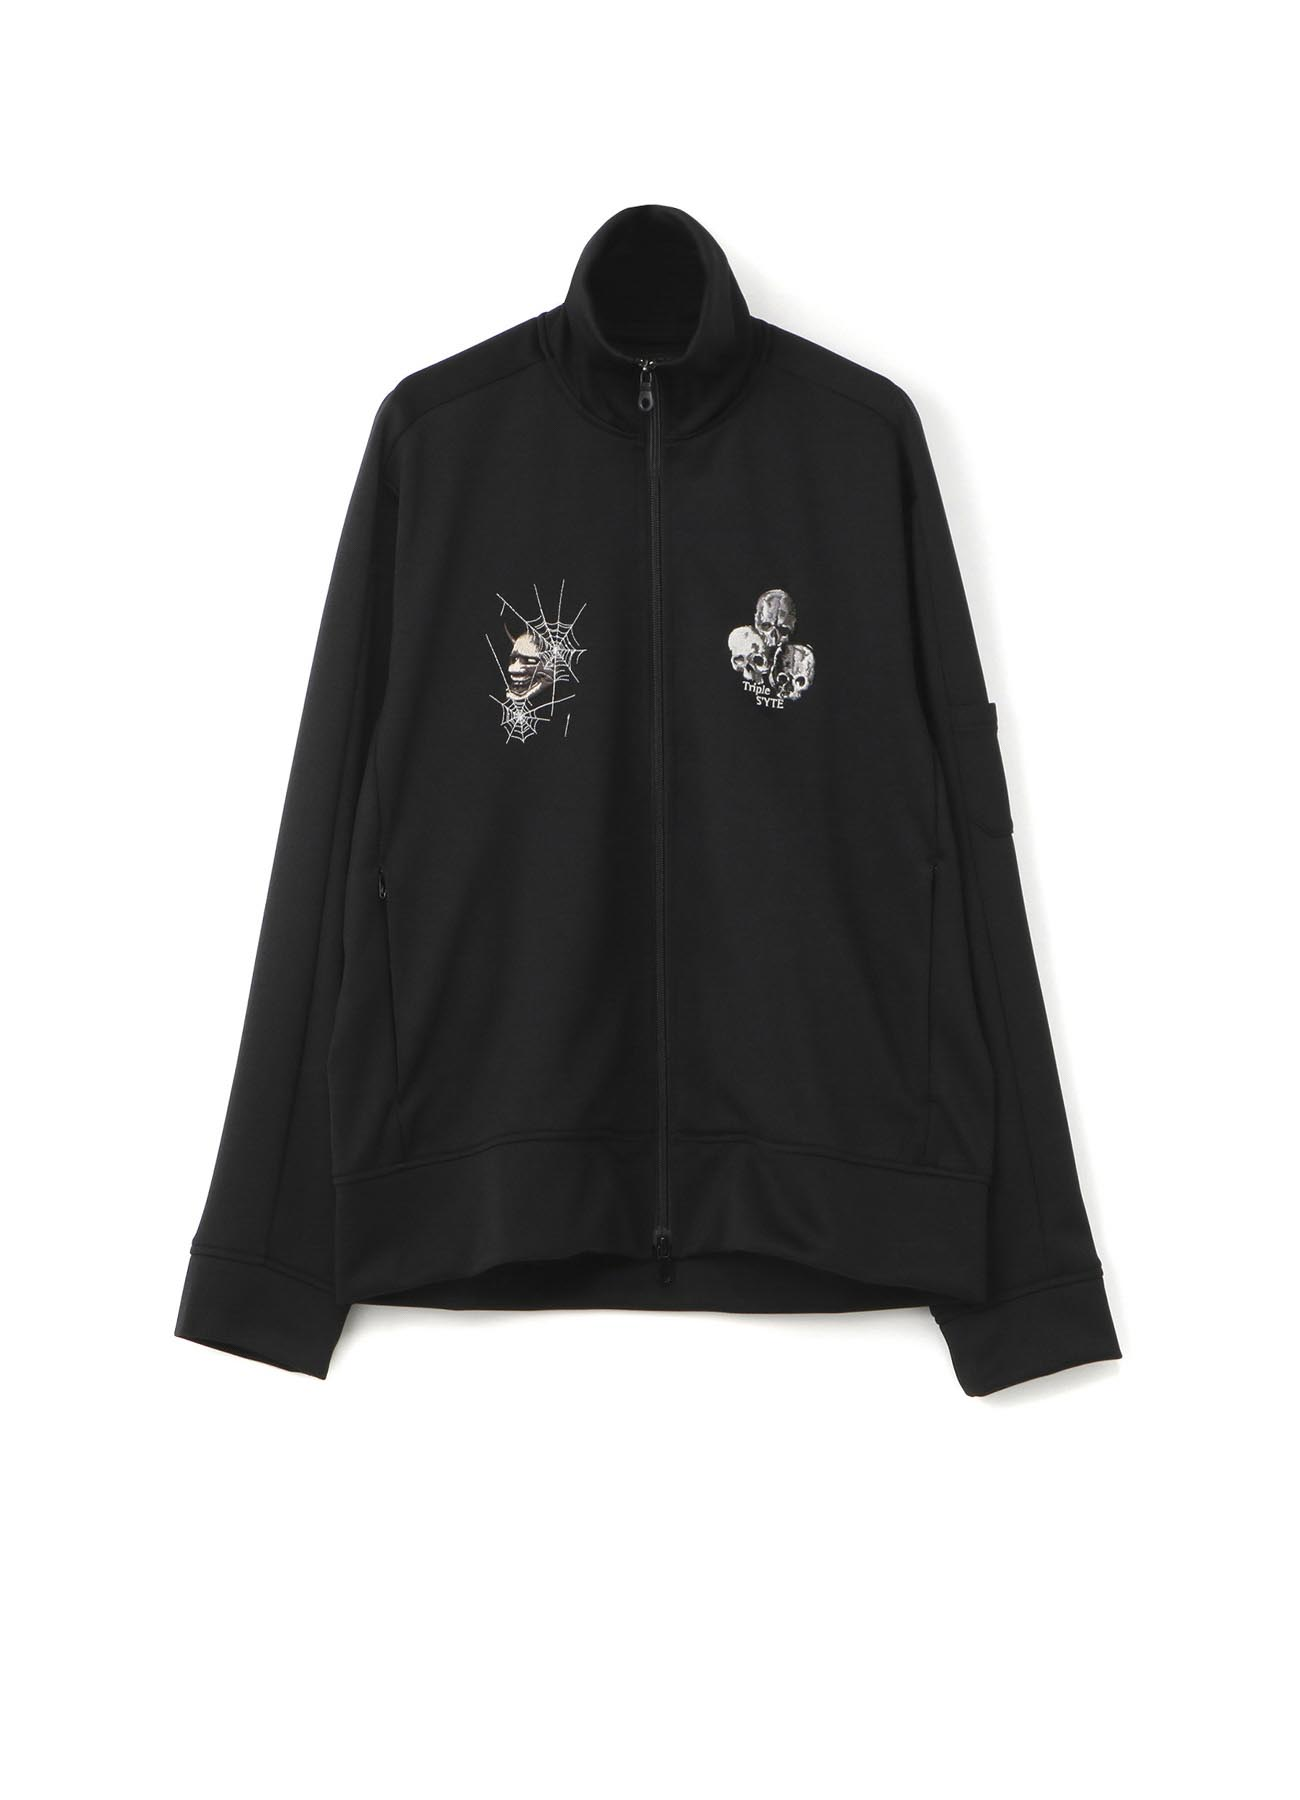 Pe/Smooth Jersey Mask of Hannya SpiderWeb Triple Skul Embroidery Track Jacket